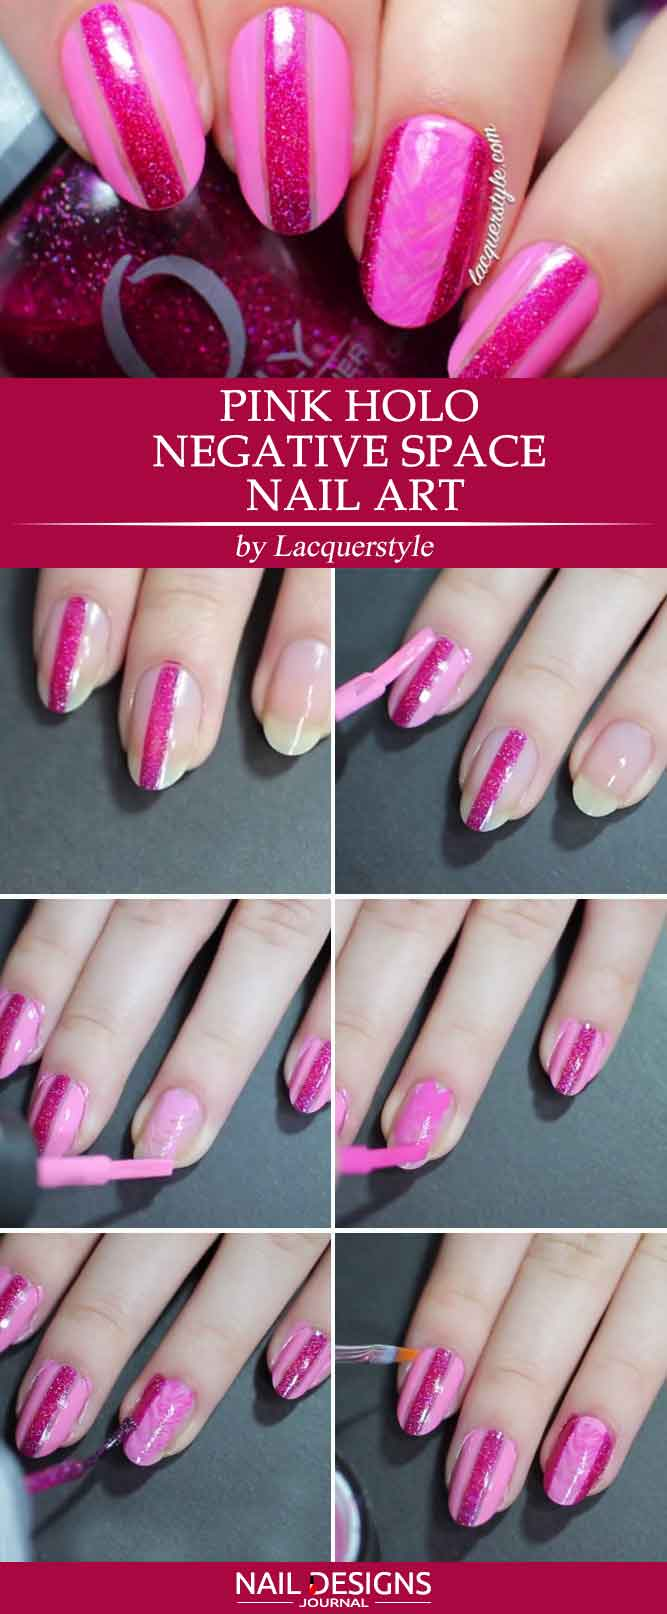 Pink Holo Negative Space Nail Art